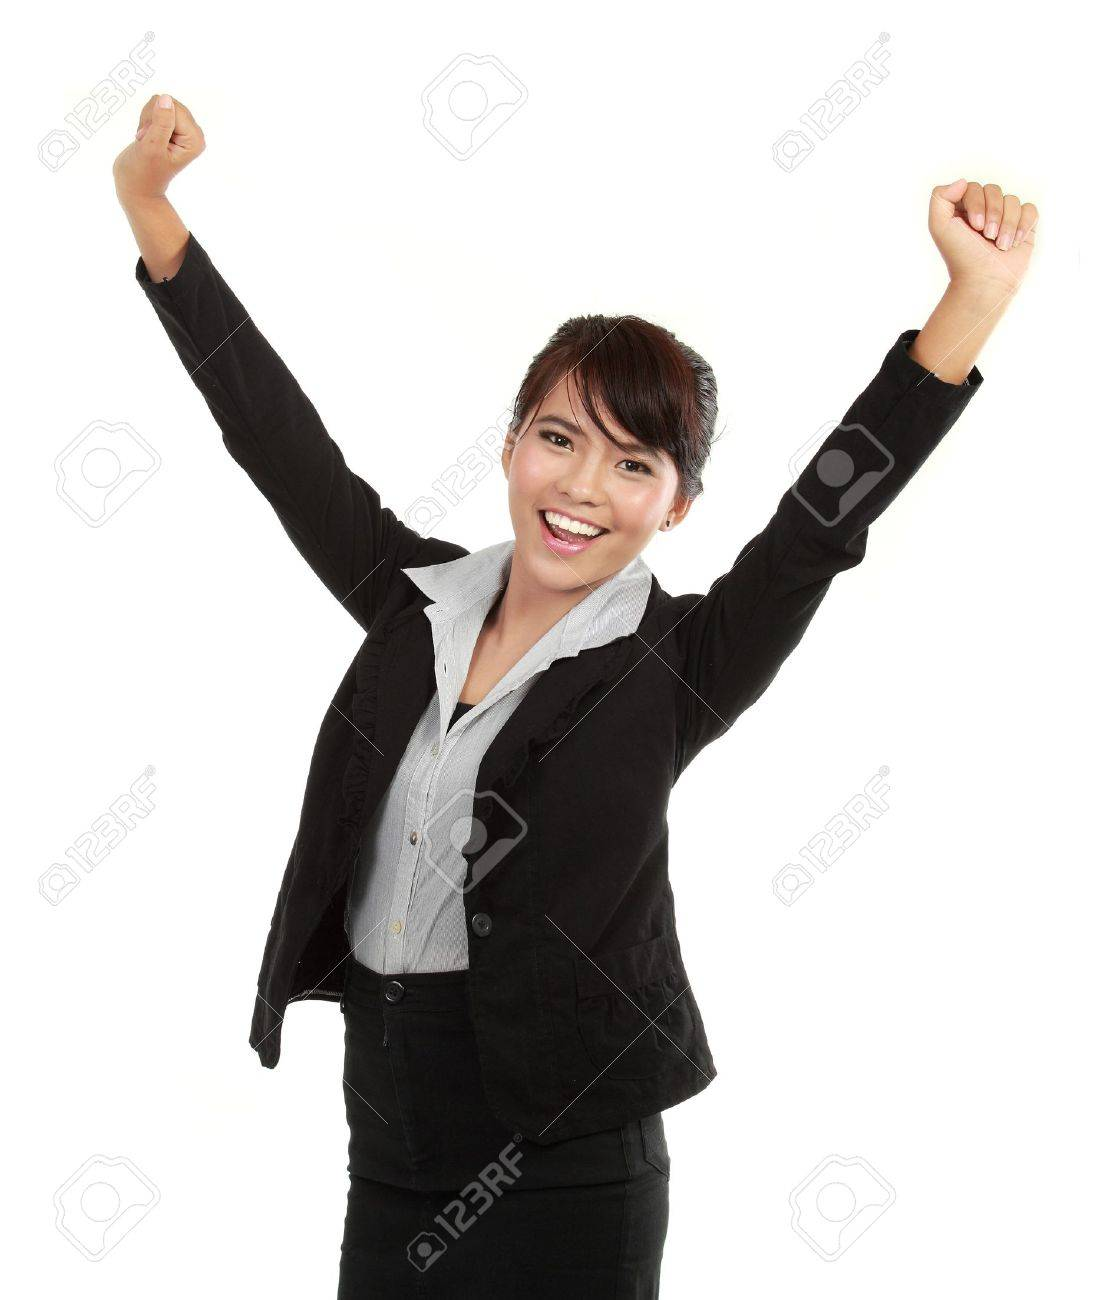 Portrait of happy young business woman celebrating success Stock Photo - 10529211